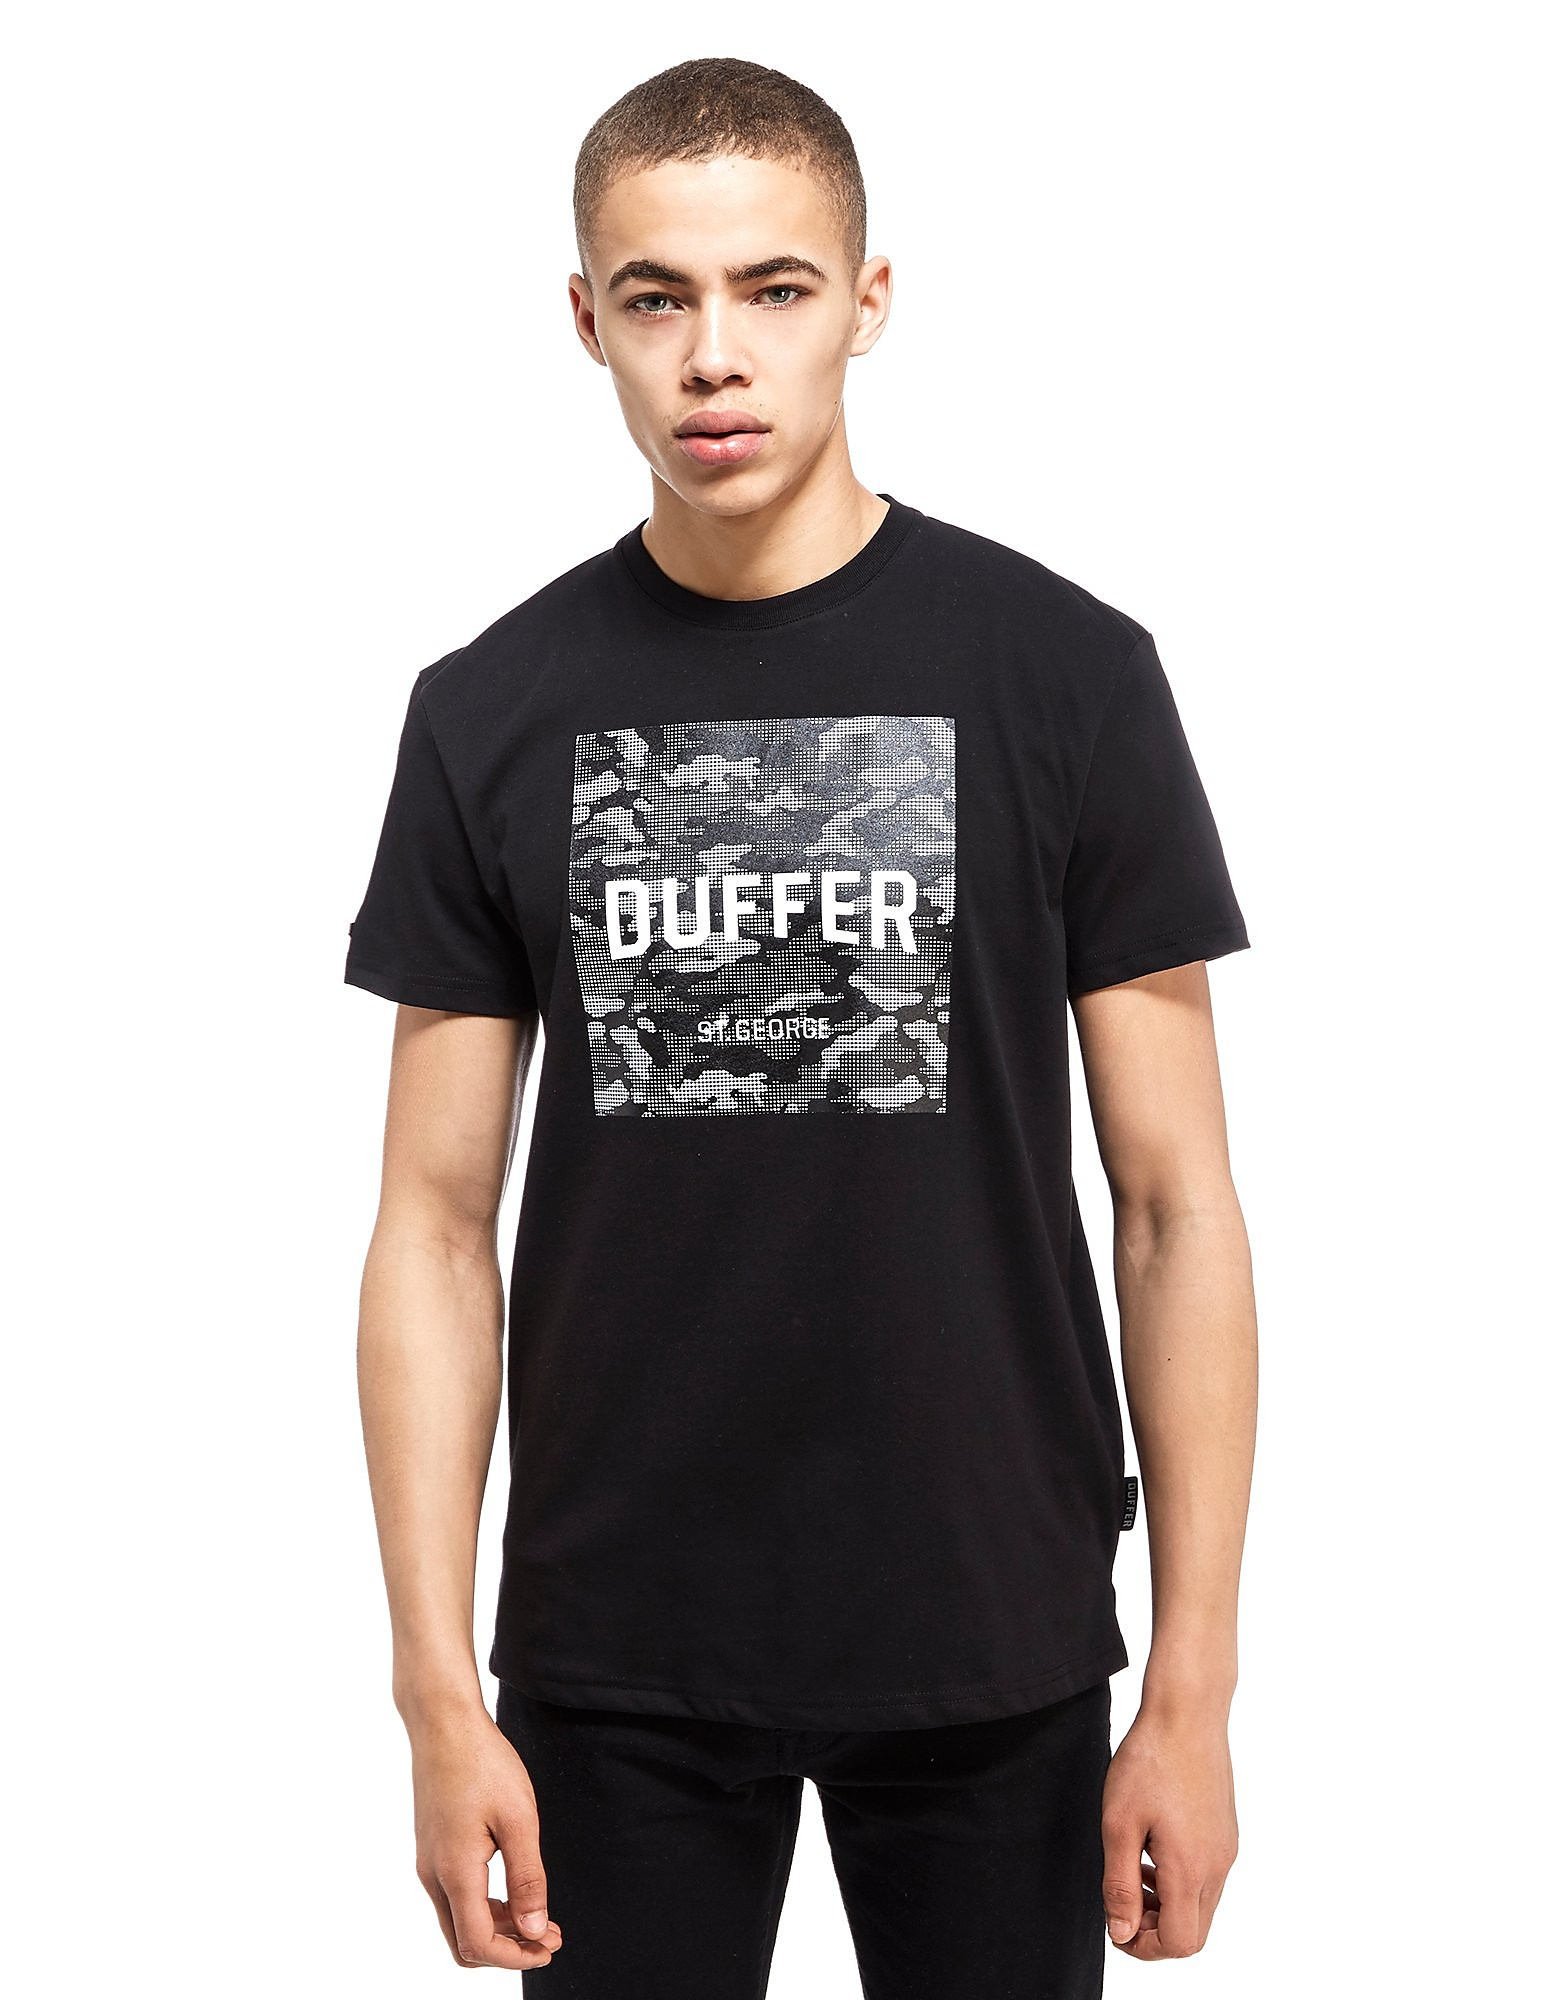 Duffer of St George Format T-Shirt